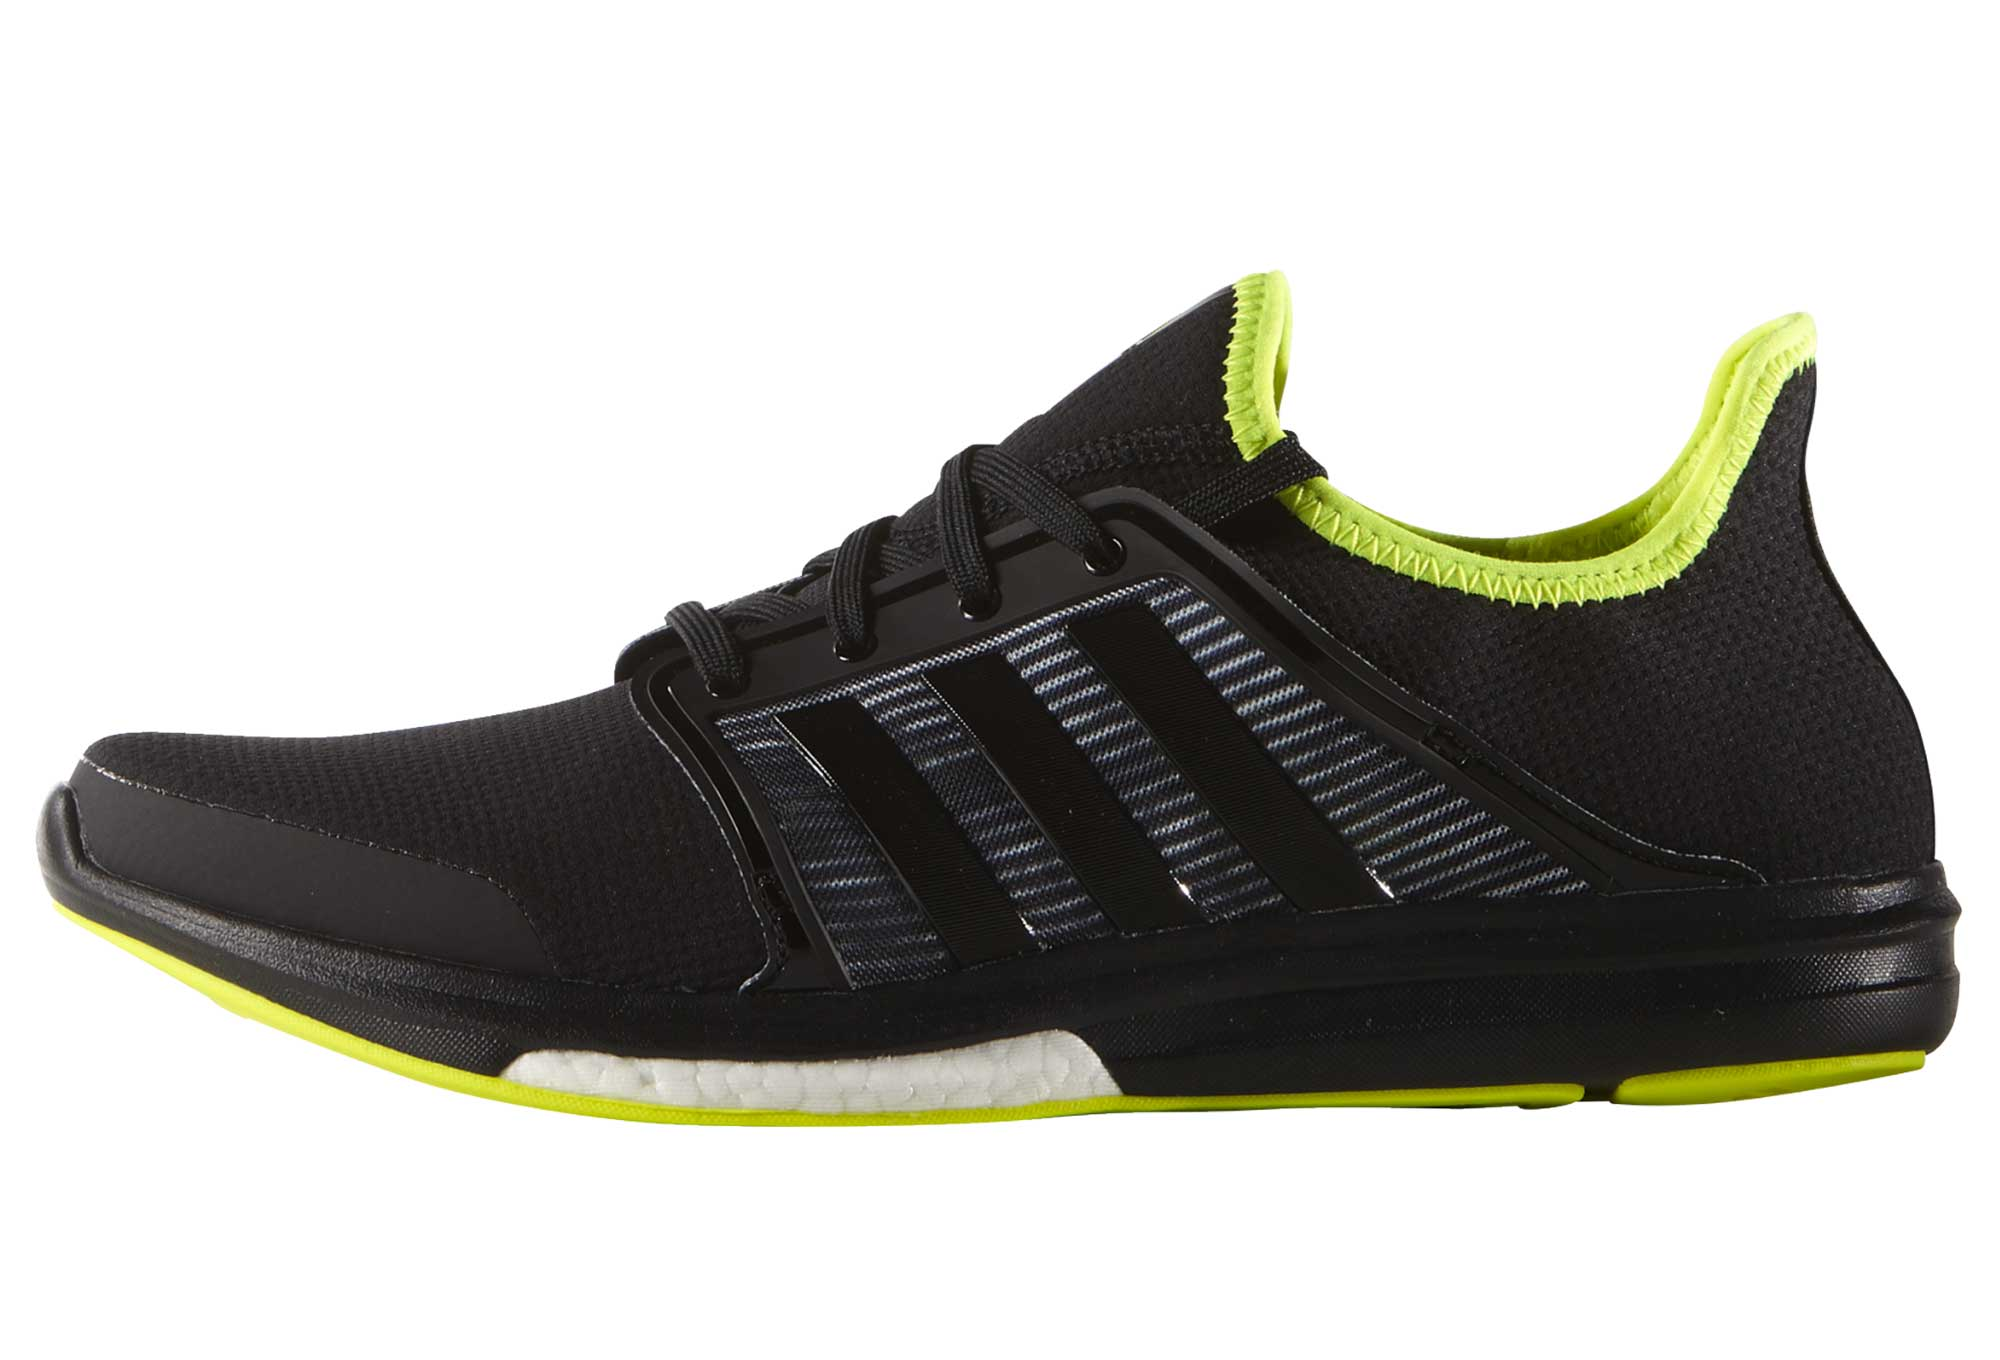 Black Sonic Shoes Climachill Adidas Mens Boost Running HD9E2I